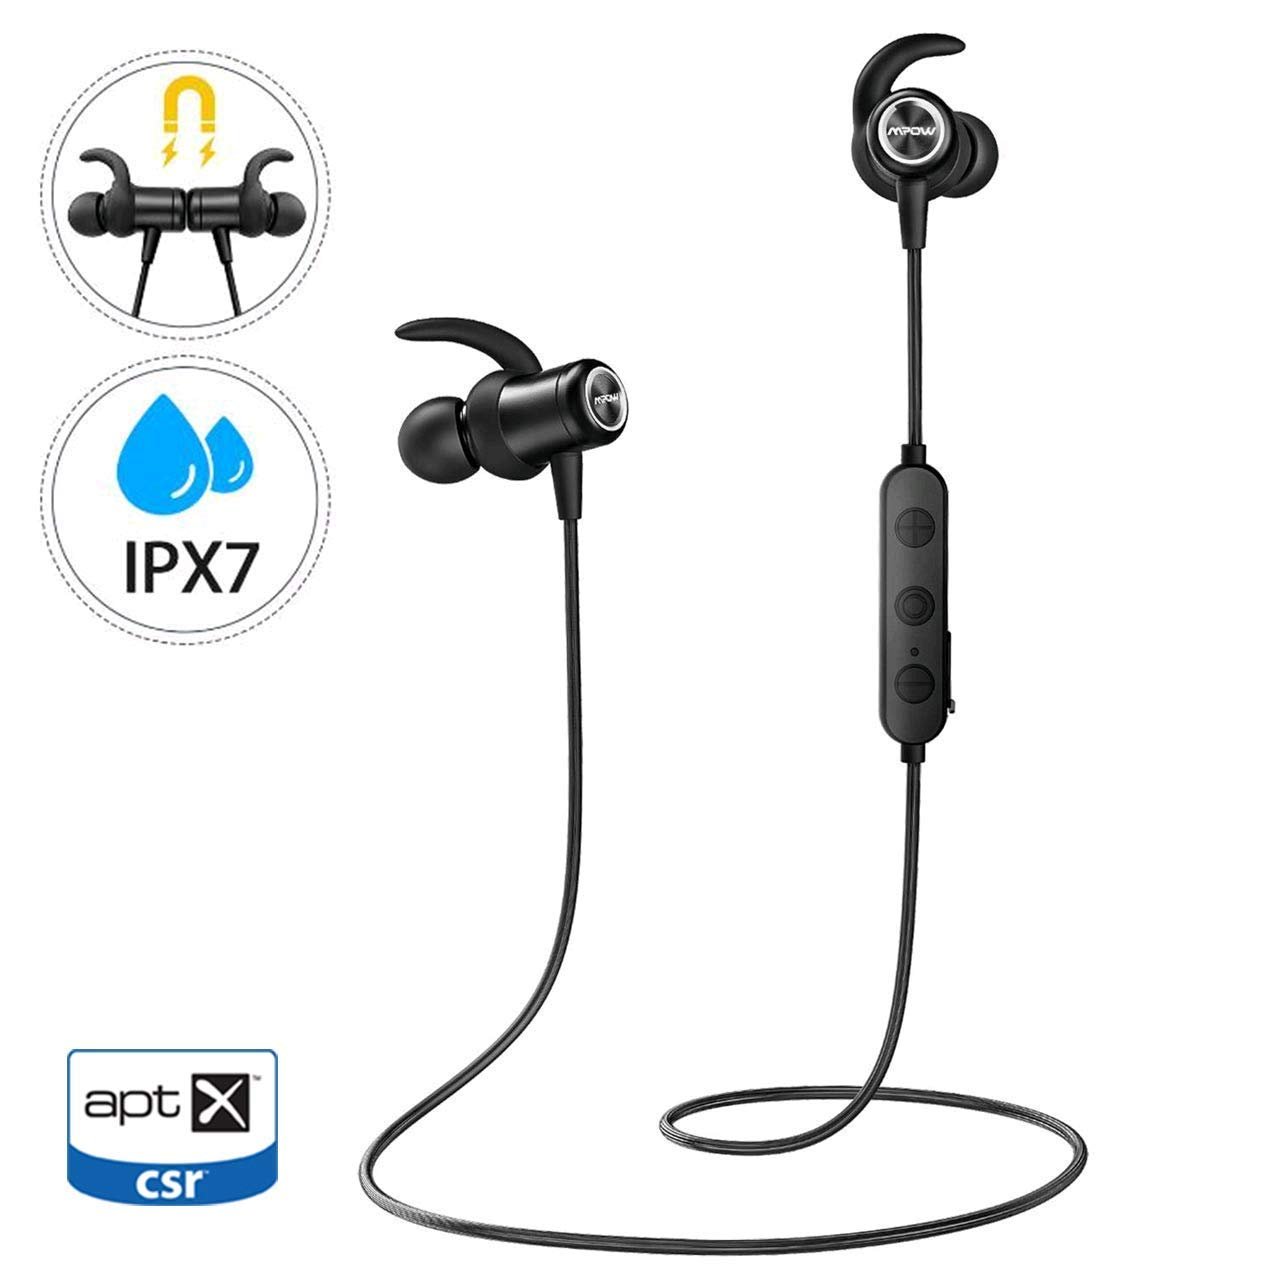 Mpow S11 Bluetooth 5.0 Headphones £13.99 @Amazon